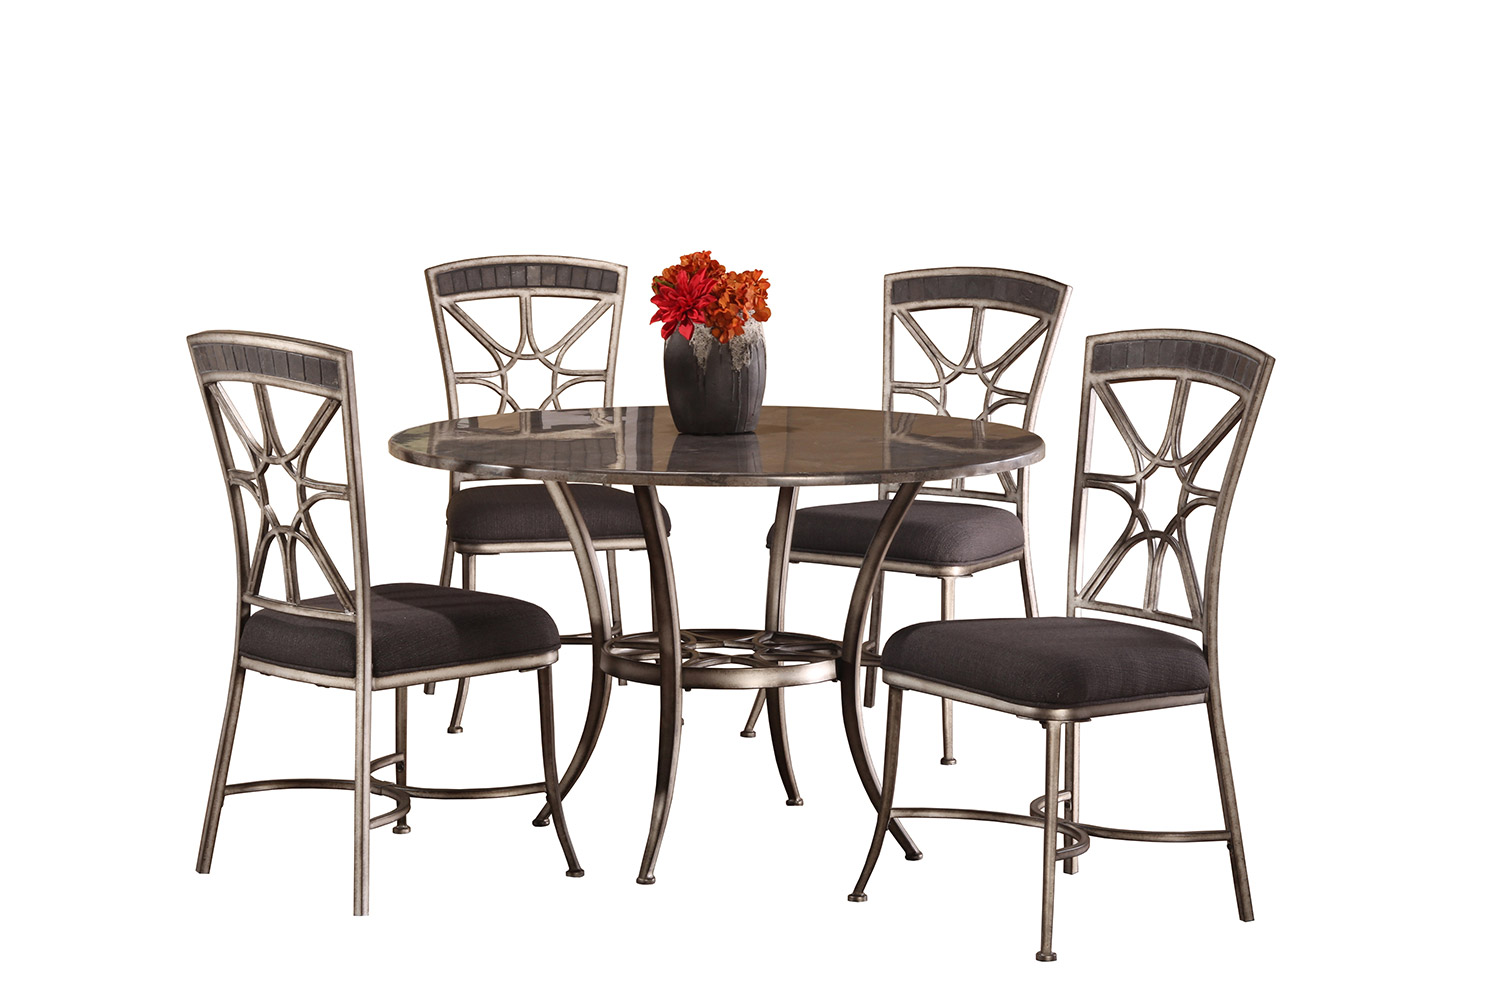 Hillsdale Chandler 5-Piece Dining Set - Black Pewter/Blue Stone Top